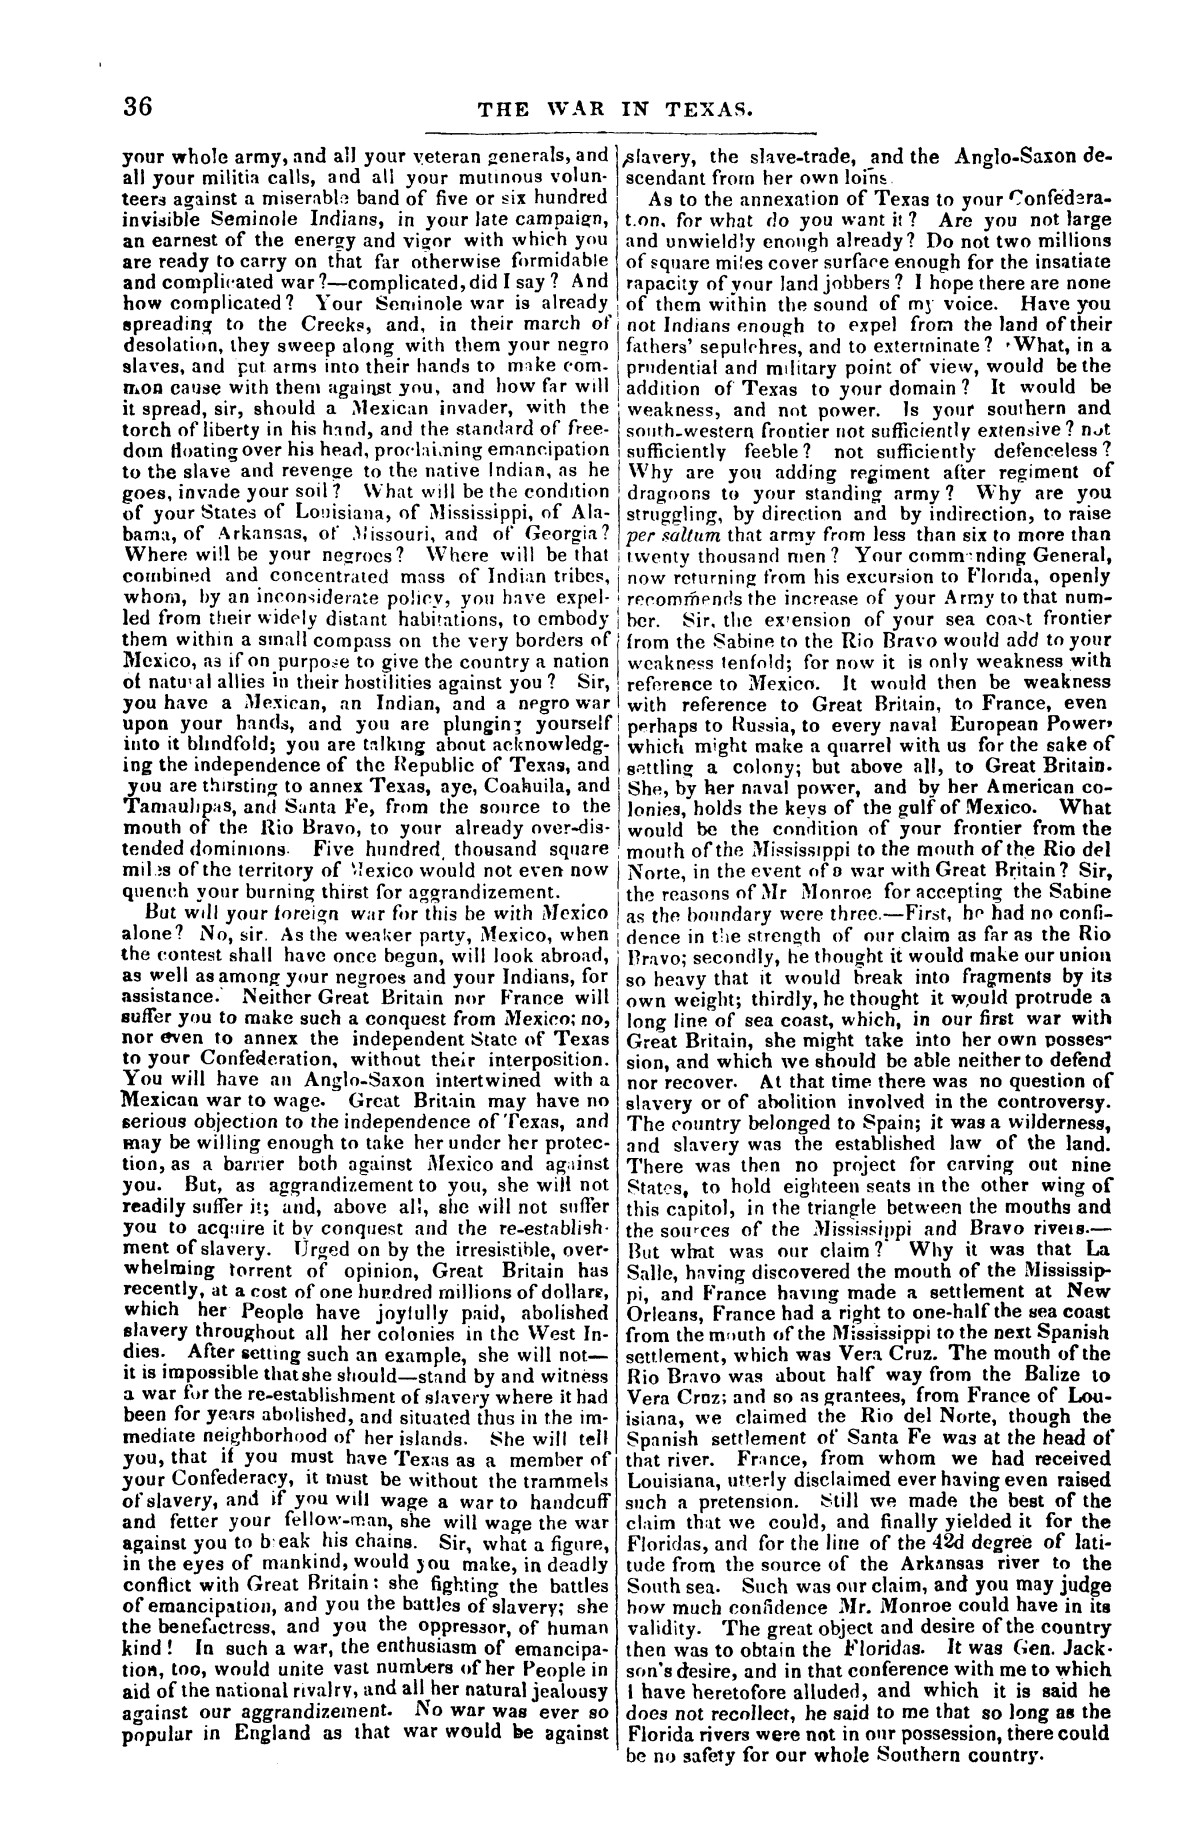 The war in Texas; a review of facts and circumstances, showing that this contest is a crusade against Mexico, set on foot by slaveholders, land speculators, & c. in order to re-establish, extend, and perpetuate the system of slavery and the slave trade.                                                                                                      [Sequence #]: 36 of 64